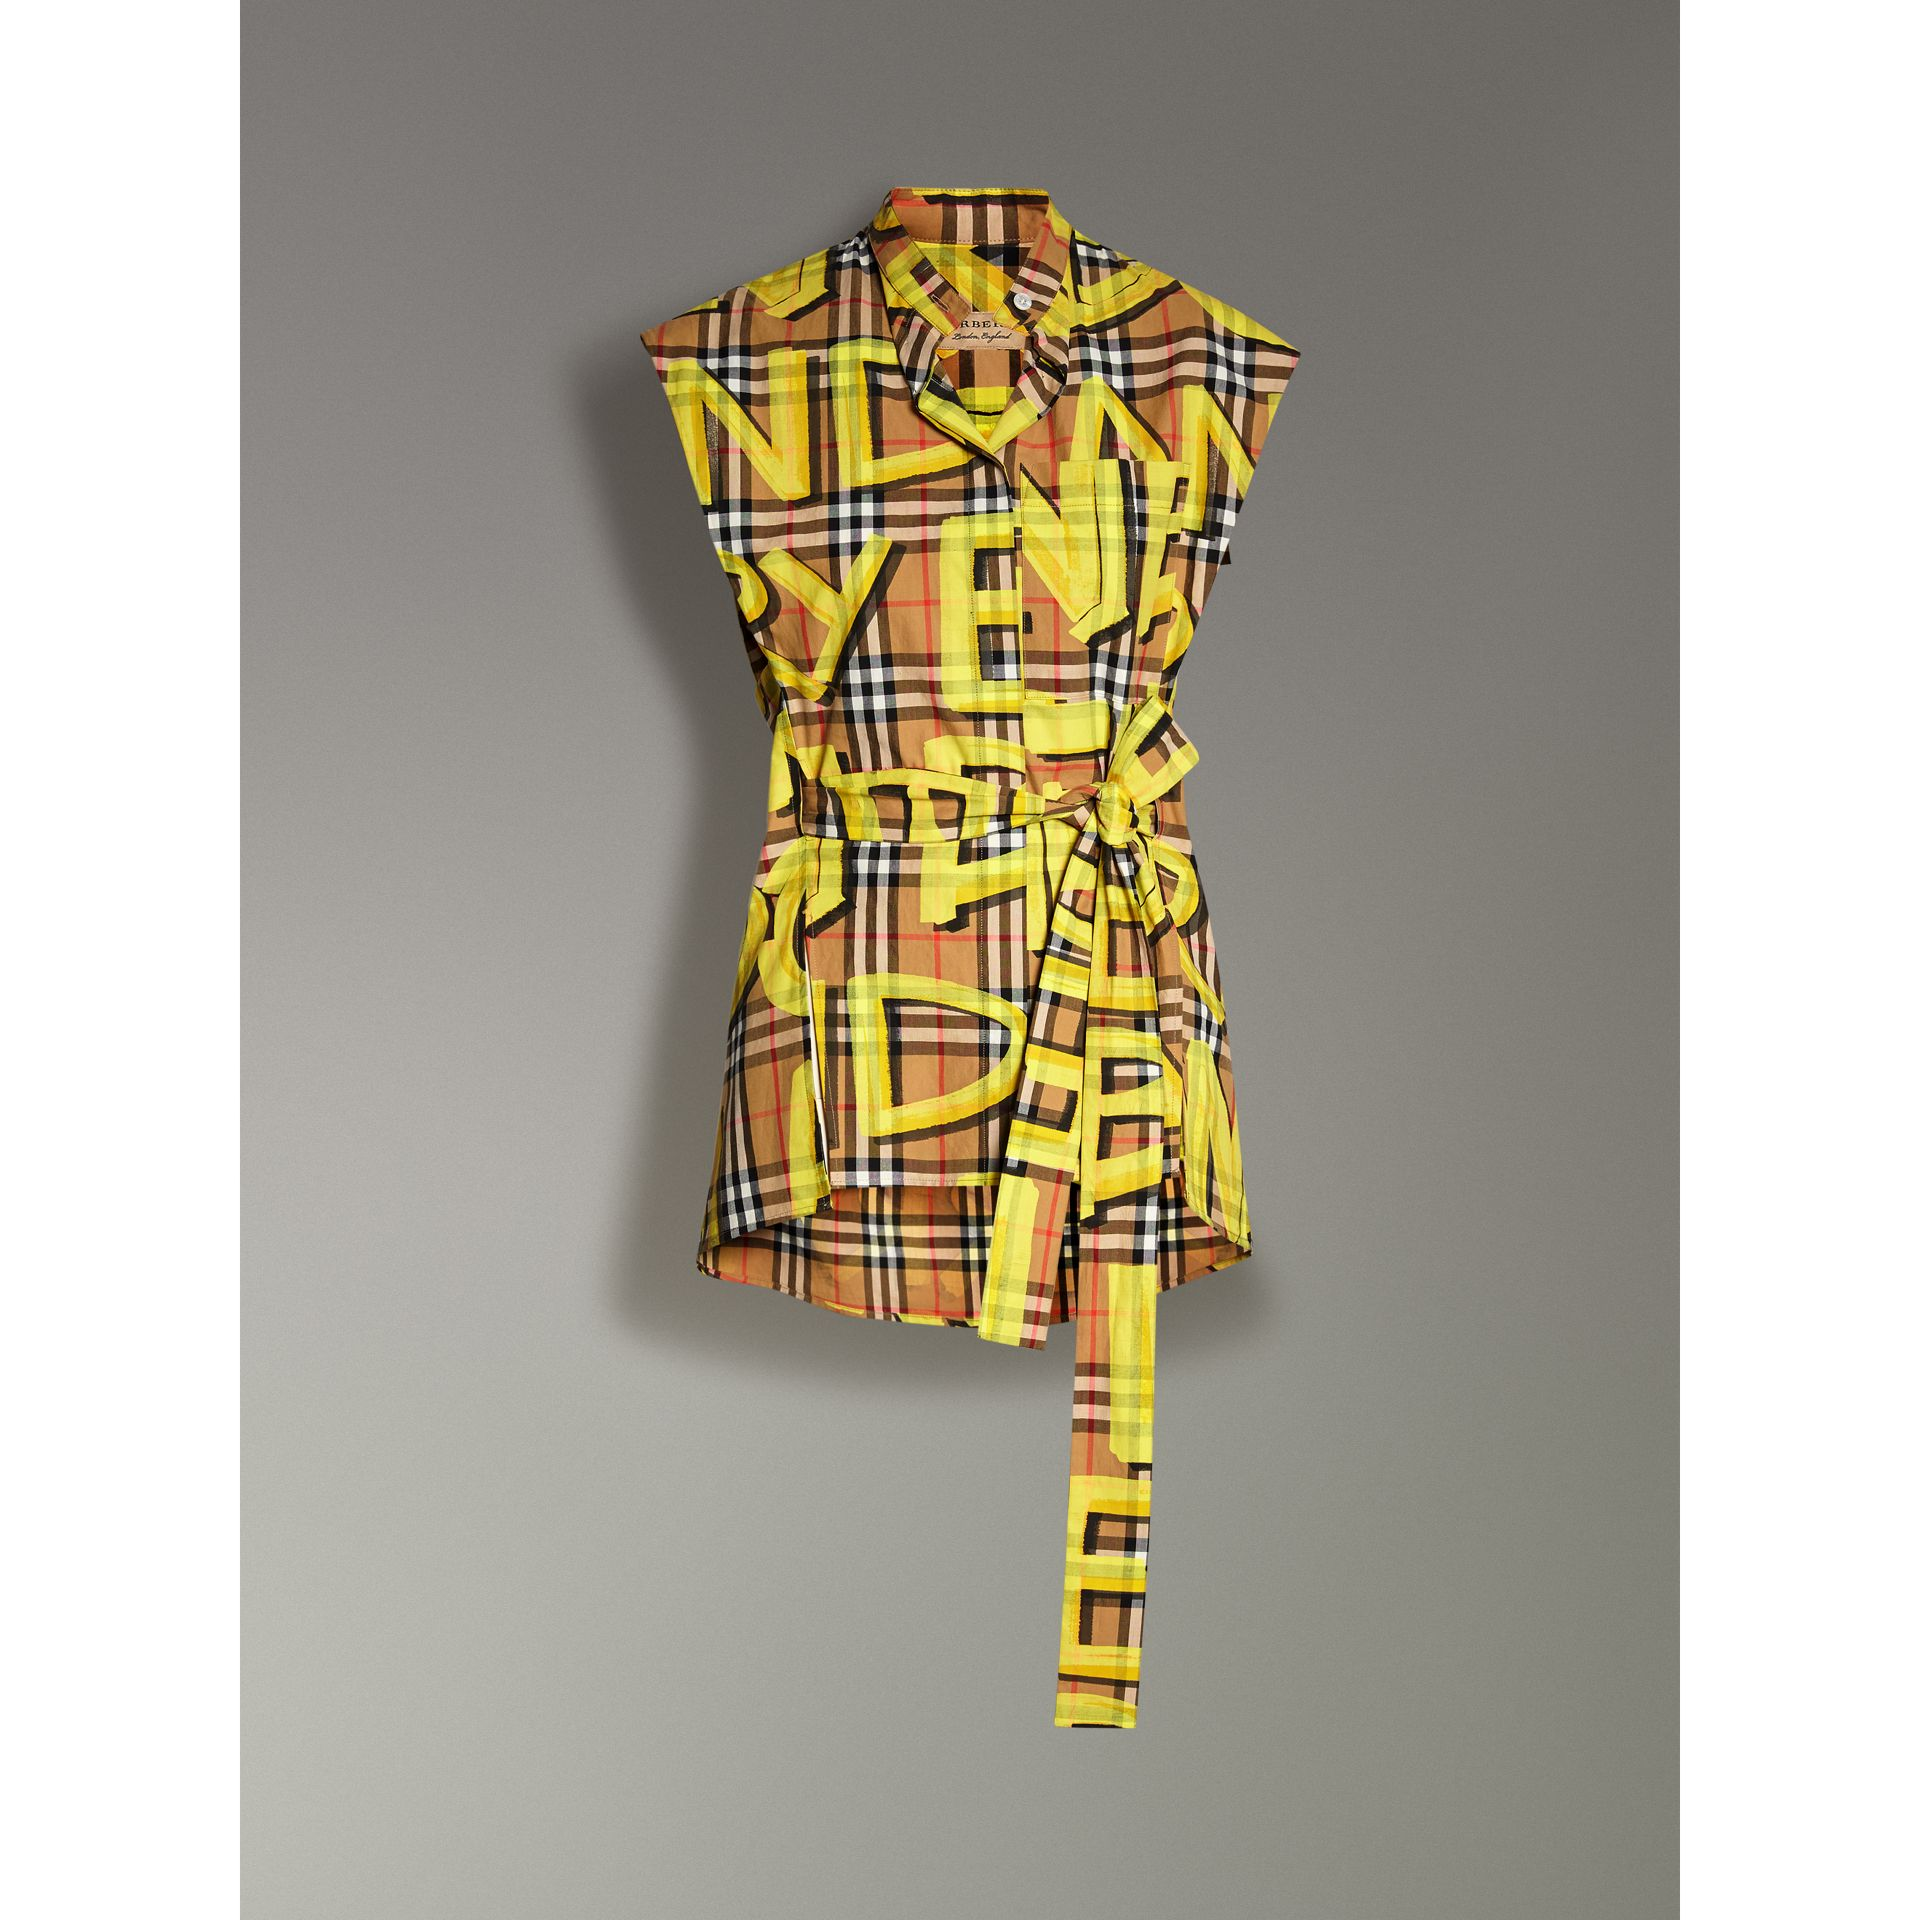 Sleeveless Graffiti Print Vintage Check Cotton Shirt in Bright Yellow - Women | Burberry Singapore - gallery image 3